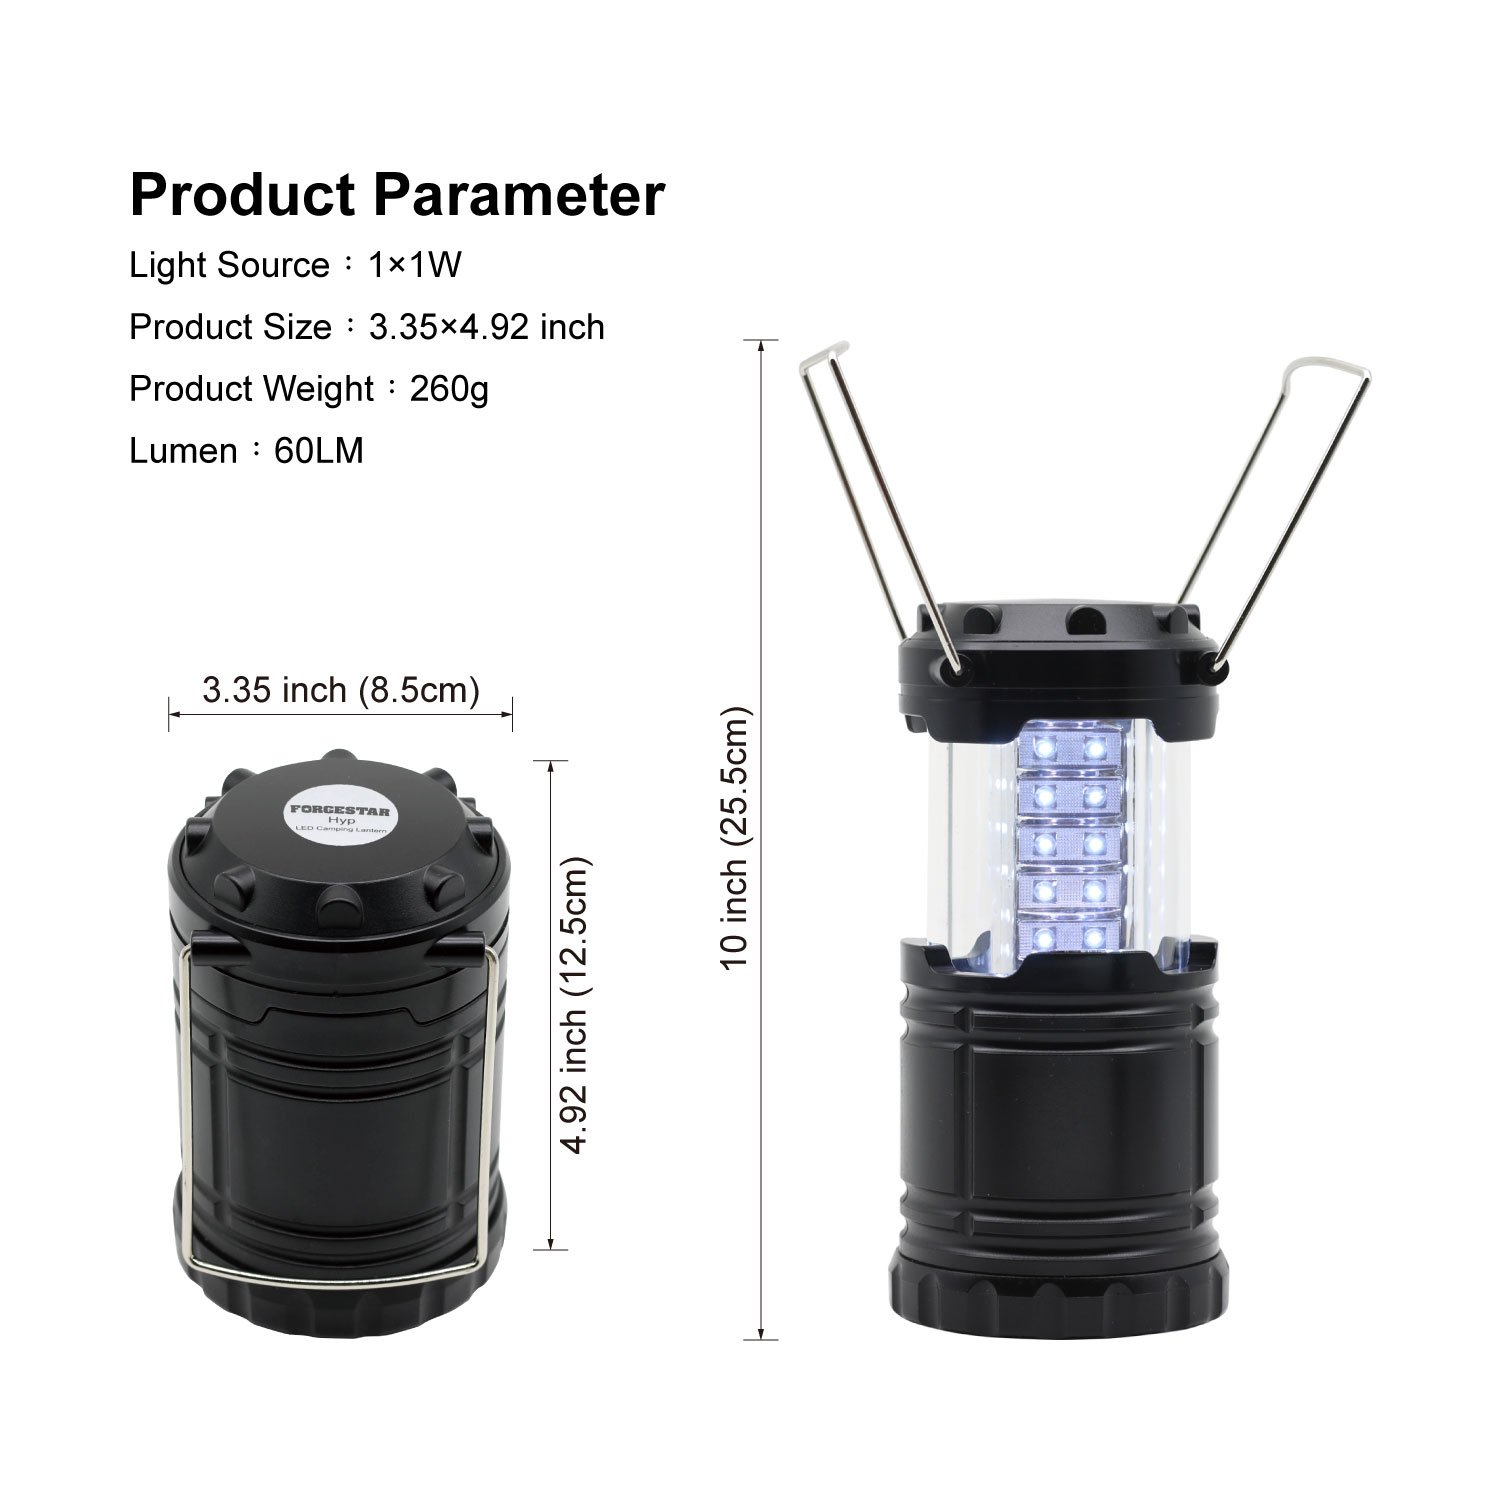 Ltd Forgestar LED Camping Lantern Outdoor Flashlight Portable Collapsible Camping lantern For Camping Outages Emergencies Storms Hurricanes Hiking Fishing Shanghai JLC Group Trading Co